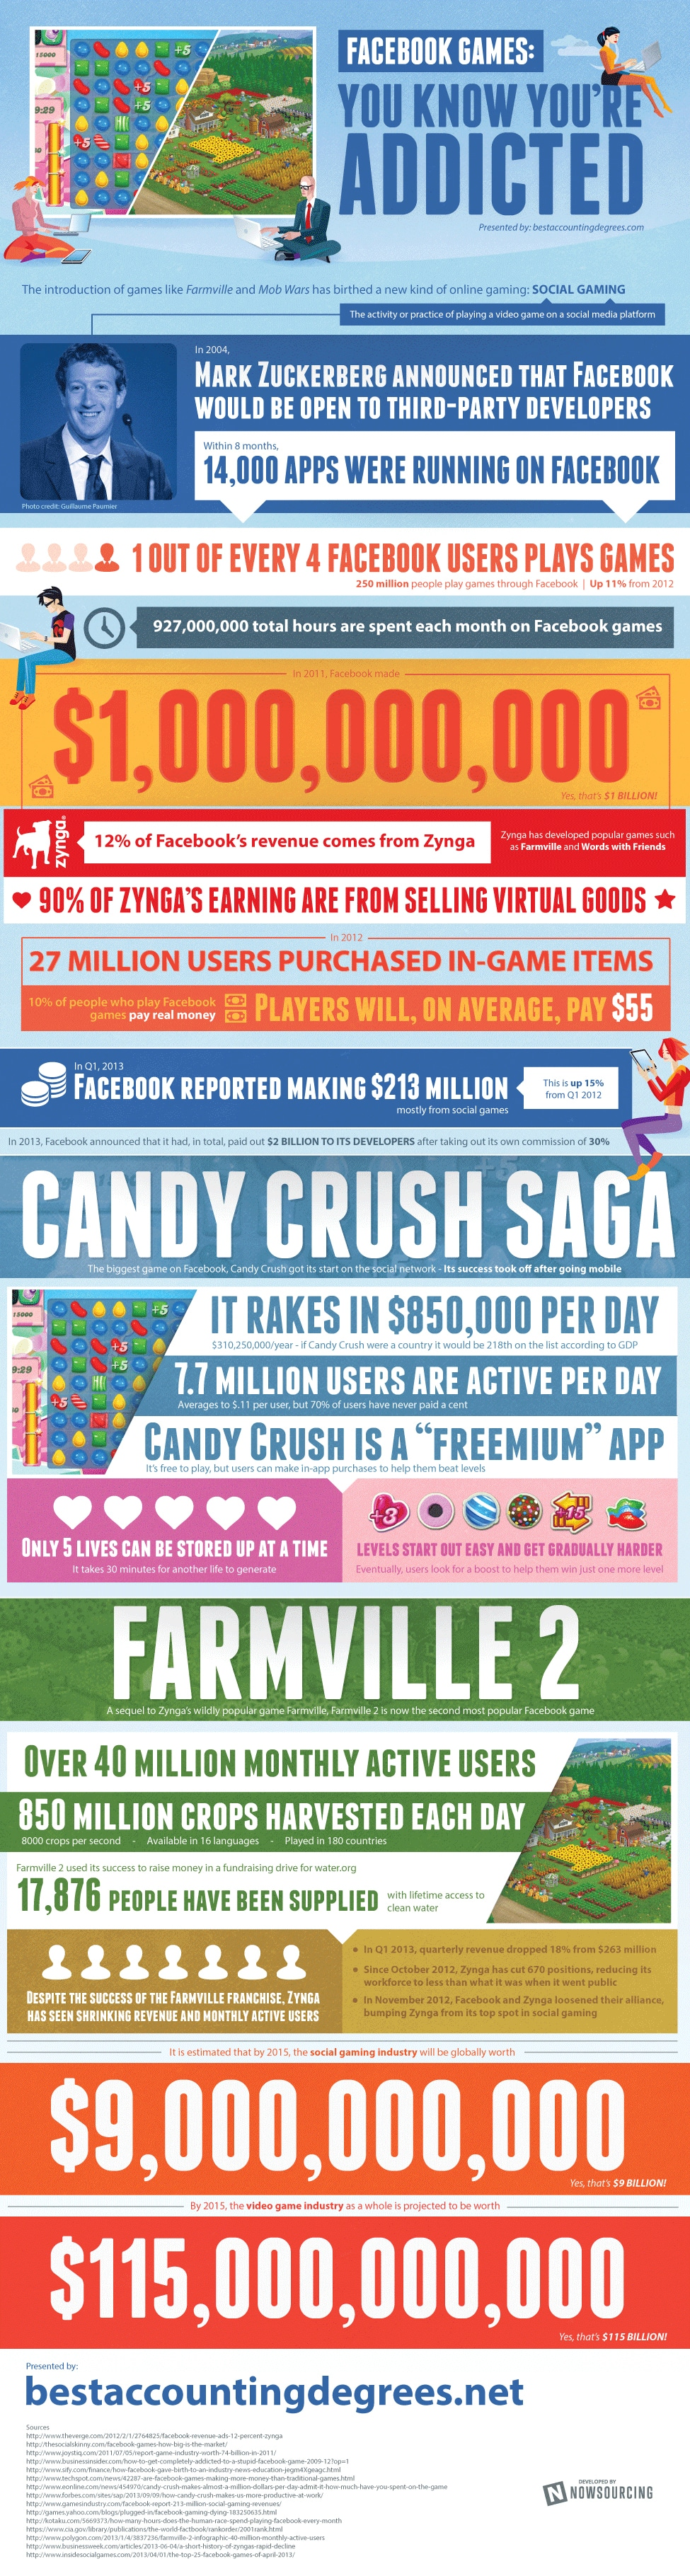 facebook-games-statistics-infographic